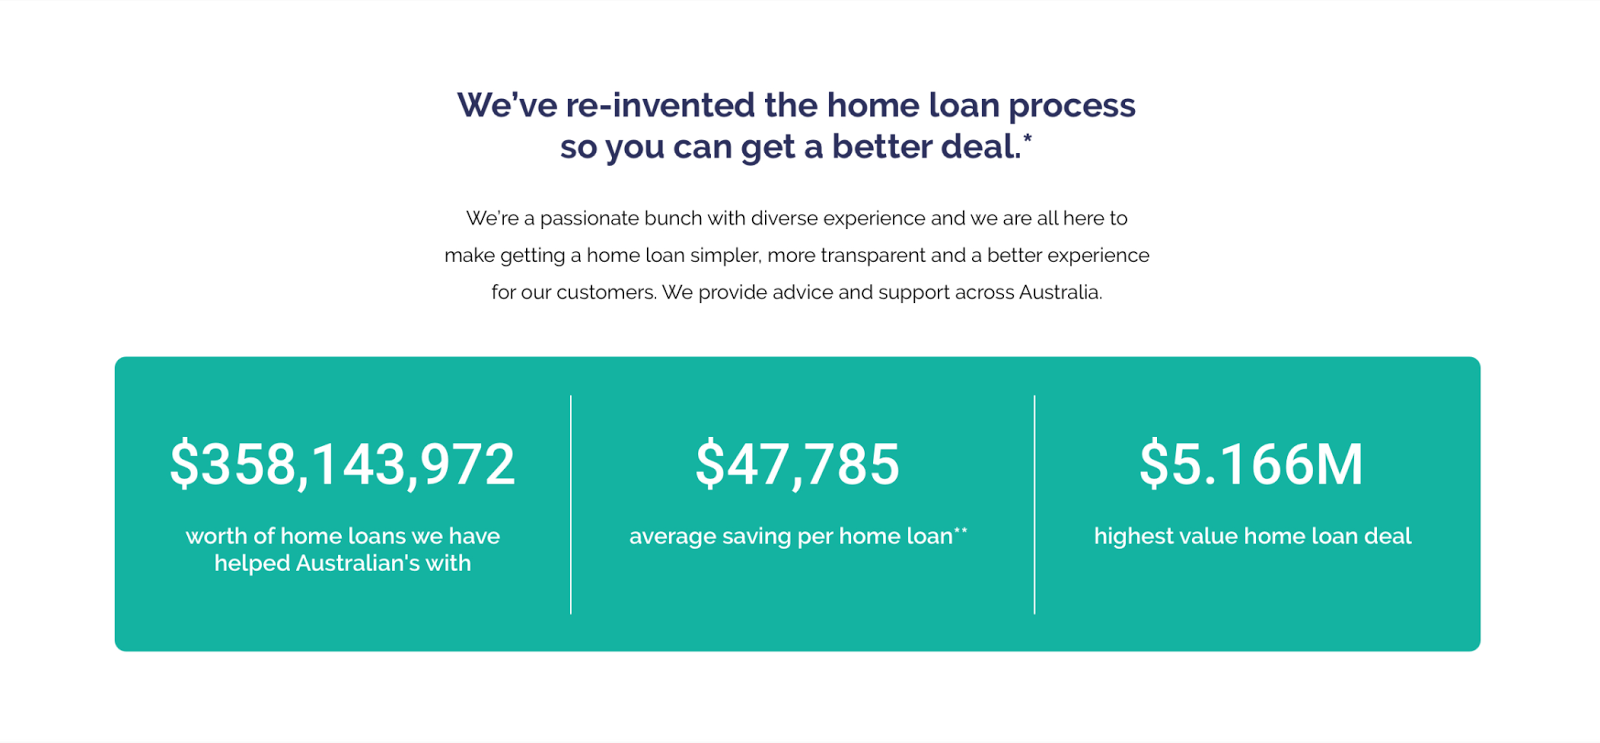 That's a lot of home loans.